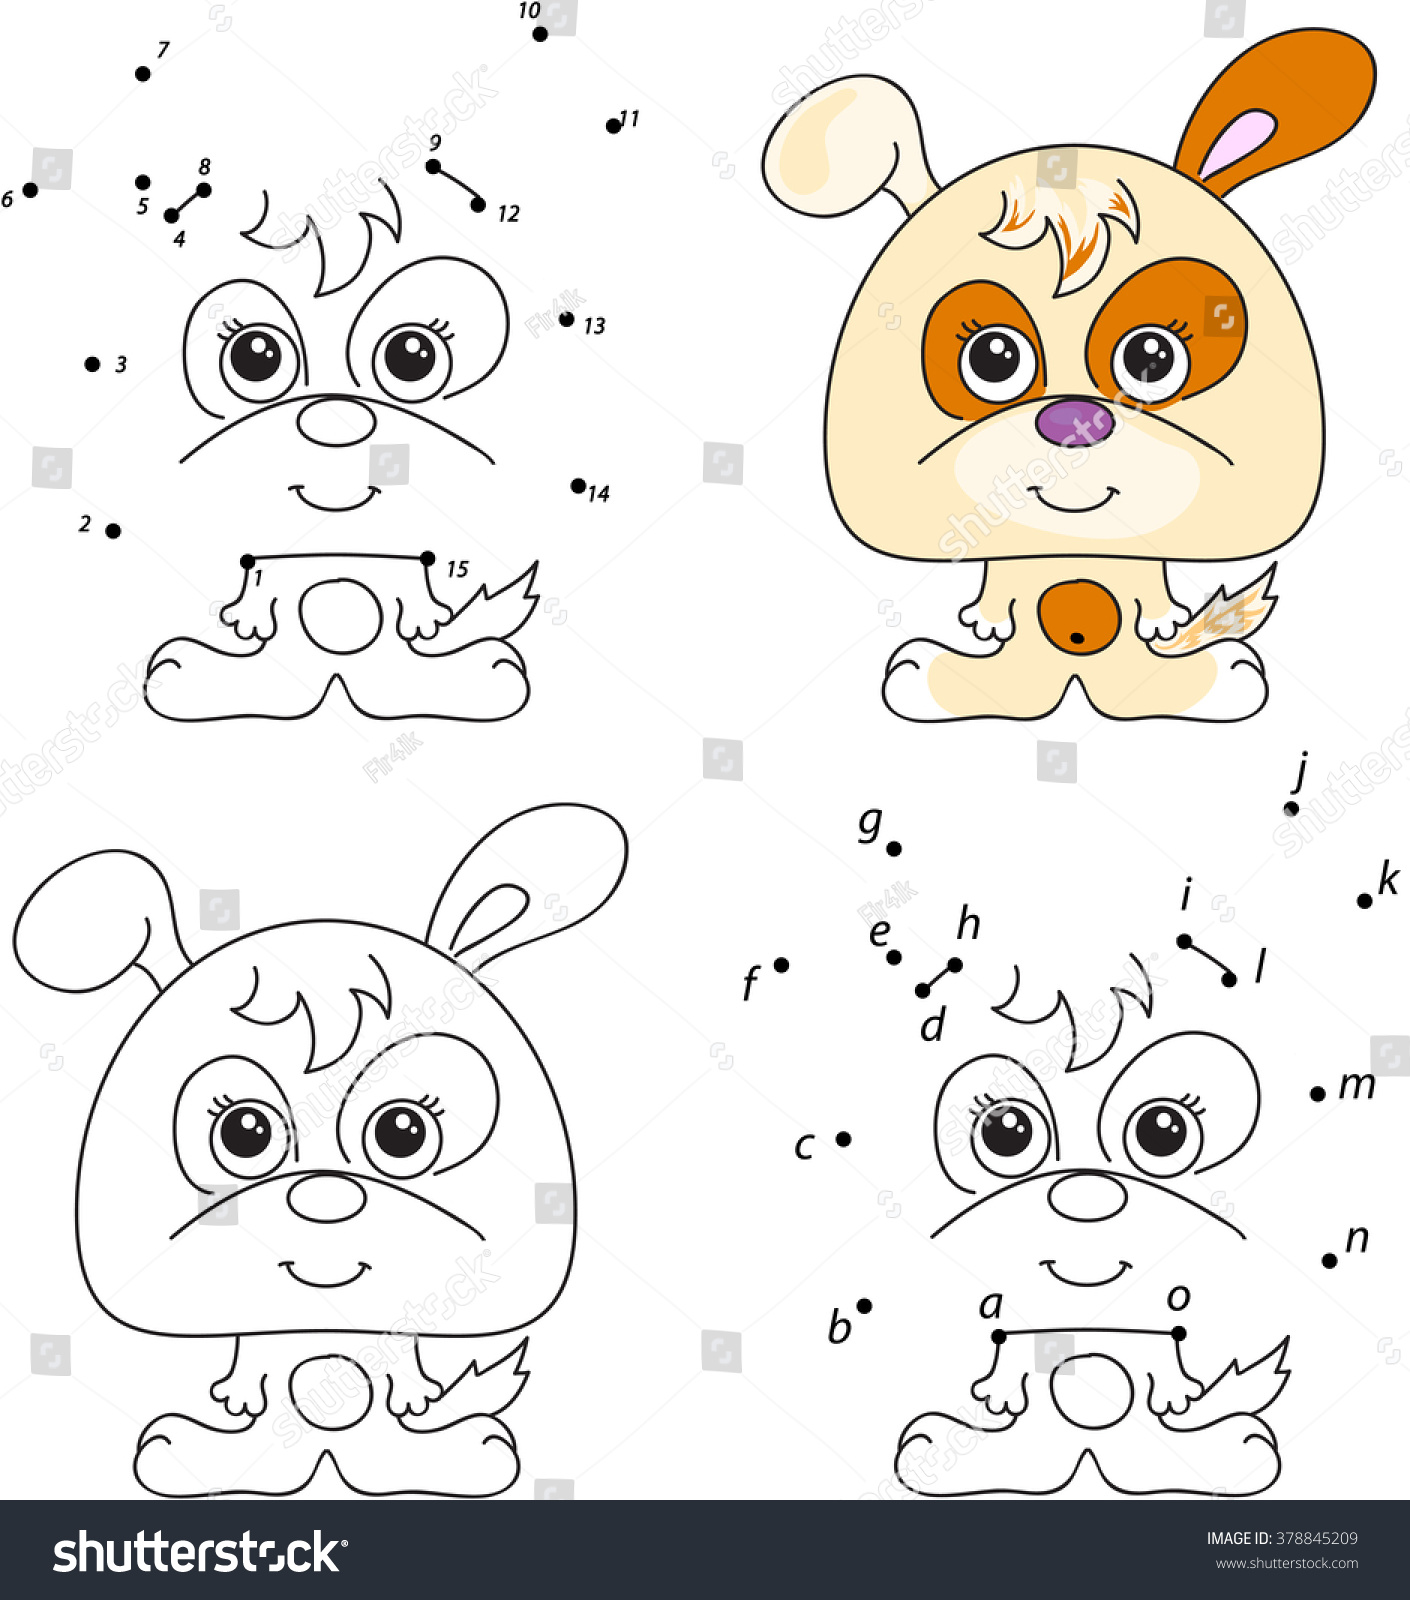 Funny Cute Puppy Coloring Book Dot Stock Vector 378845209 - Shutterstock